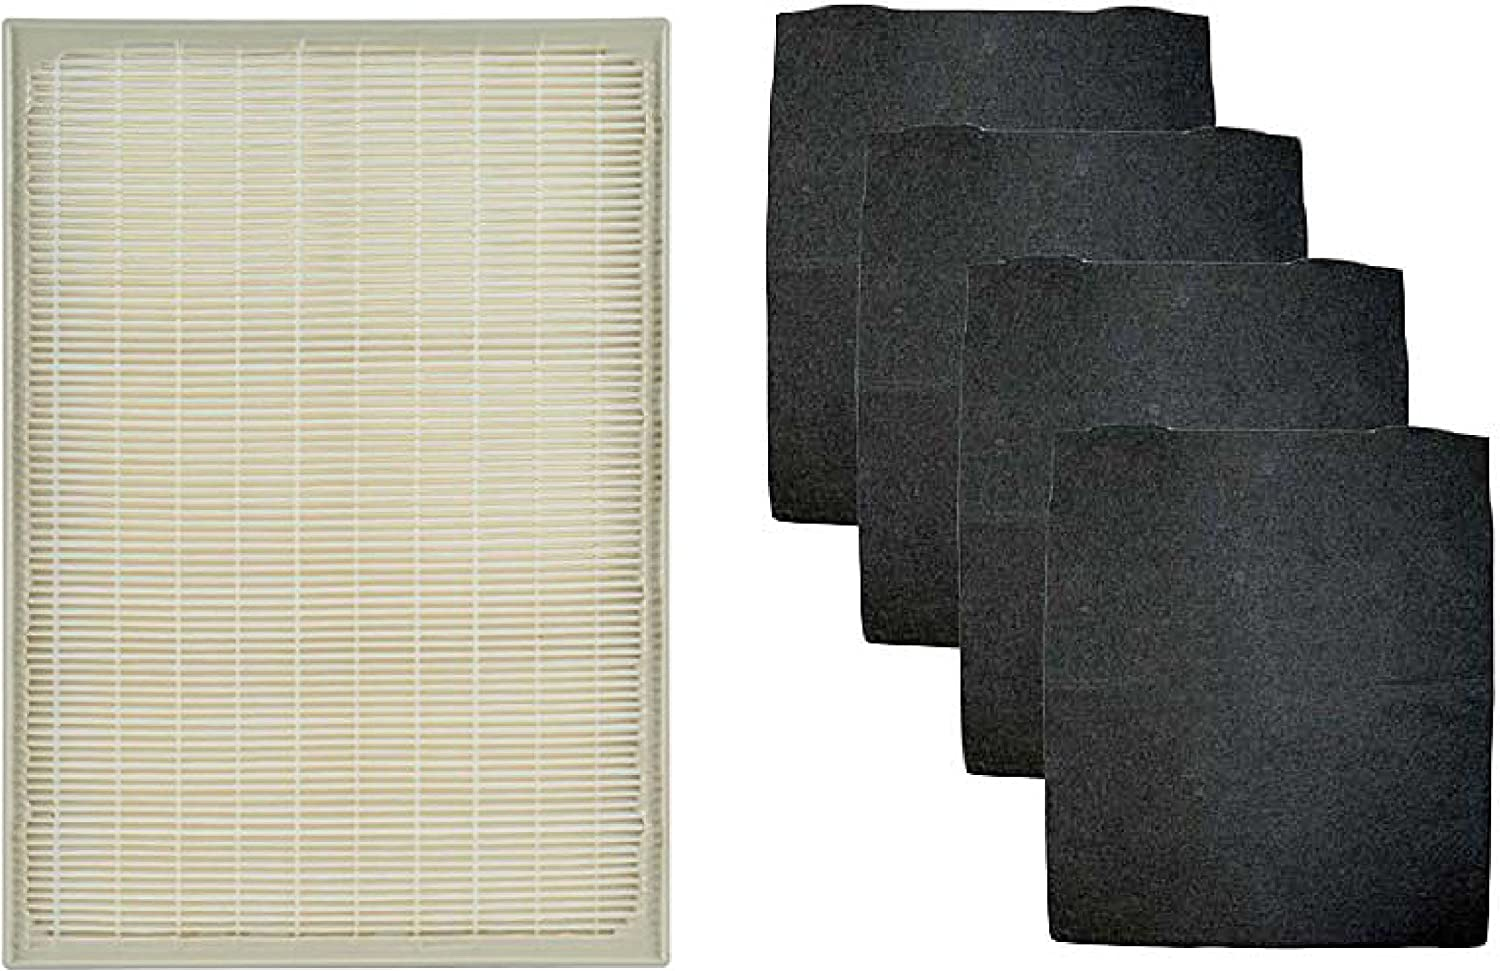 Nispira HEPA Filter with 4 Pre-Carbon Filters Compatible with Whirlpool Whispure Air Purifier Models AP25030K, APR25530L, APR25130L; Replaces Part # 1183051 1183051K, 1 Set